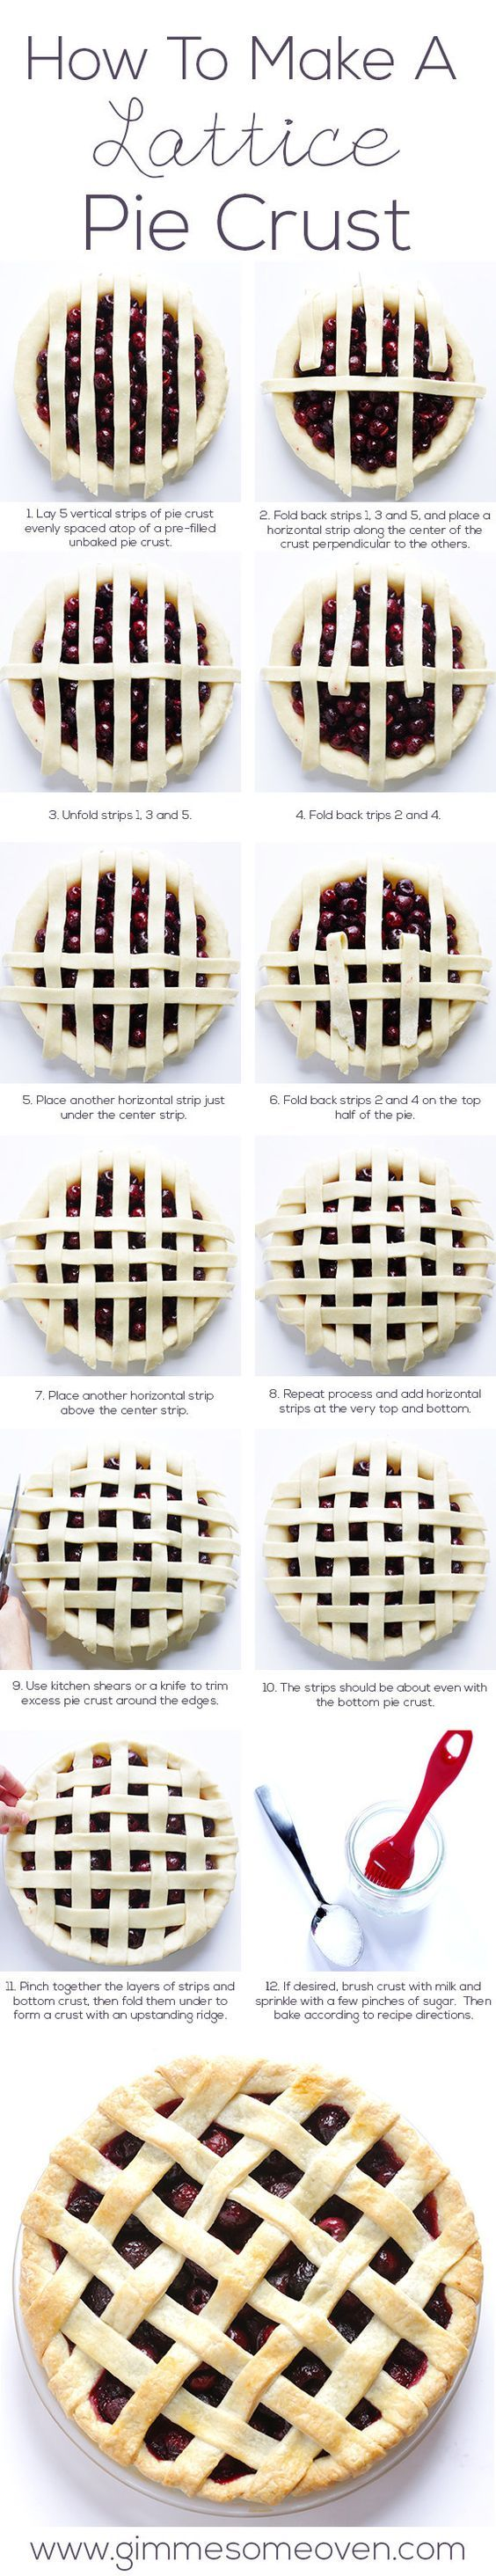 How To Make A Lattice Crust Pie - (Diagram)